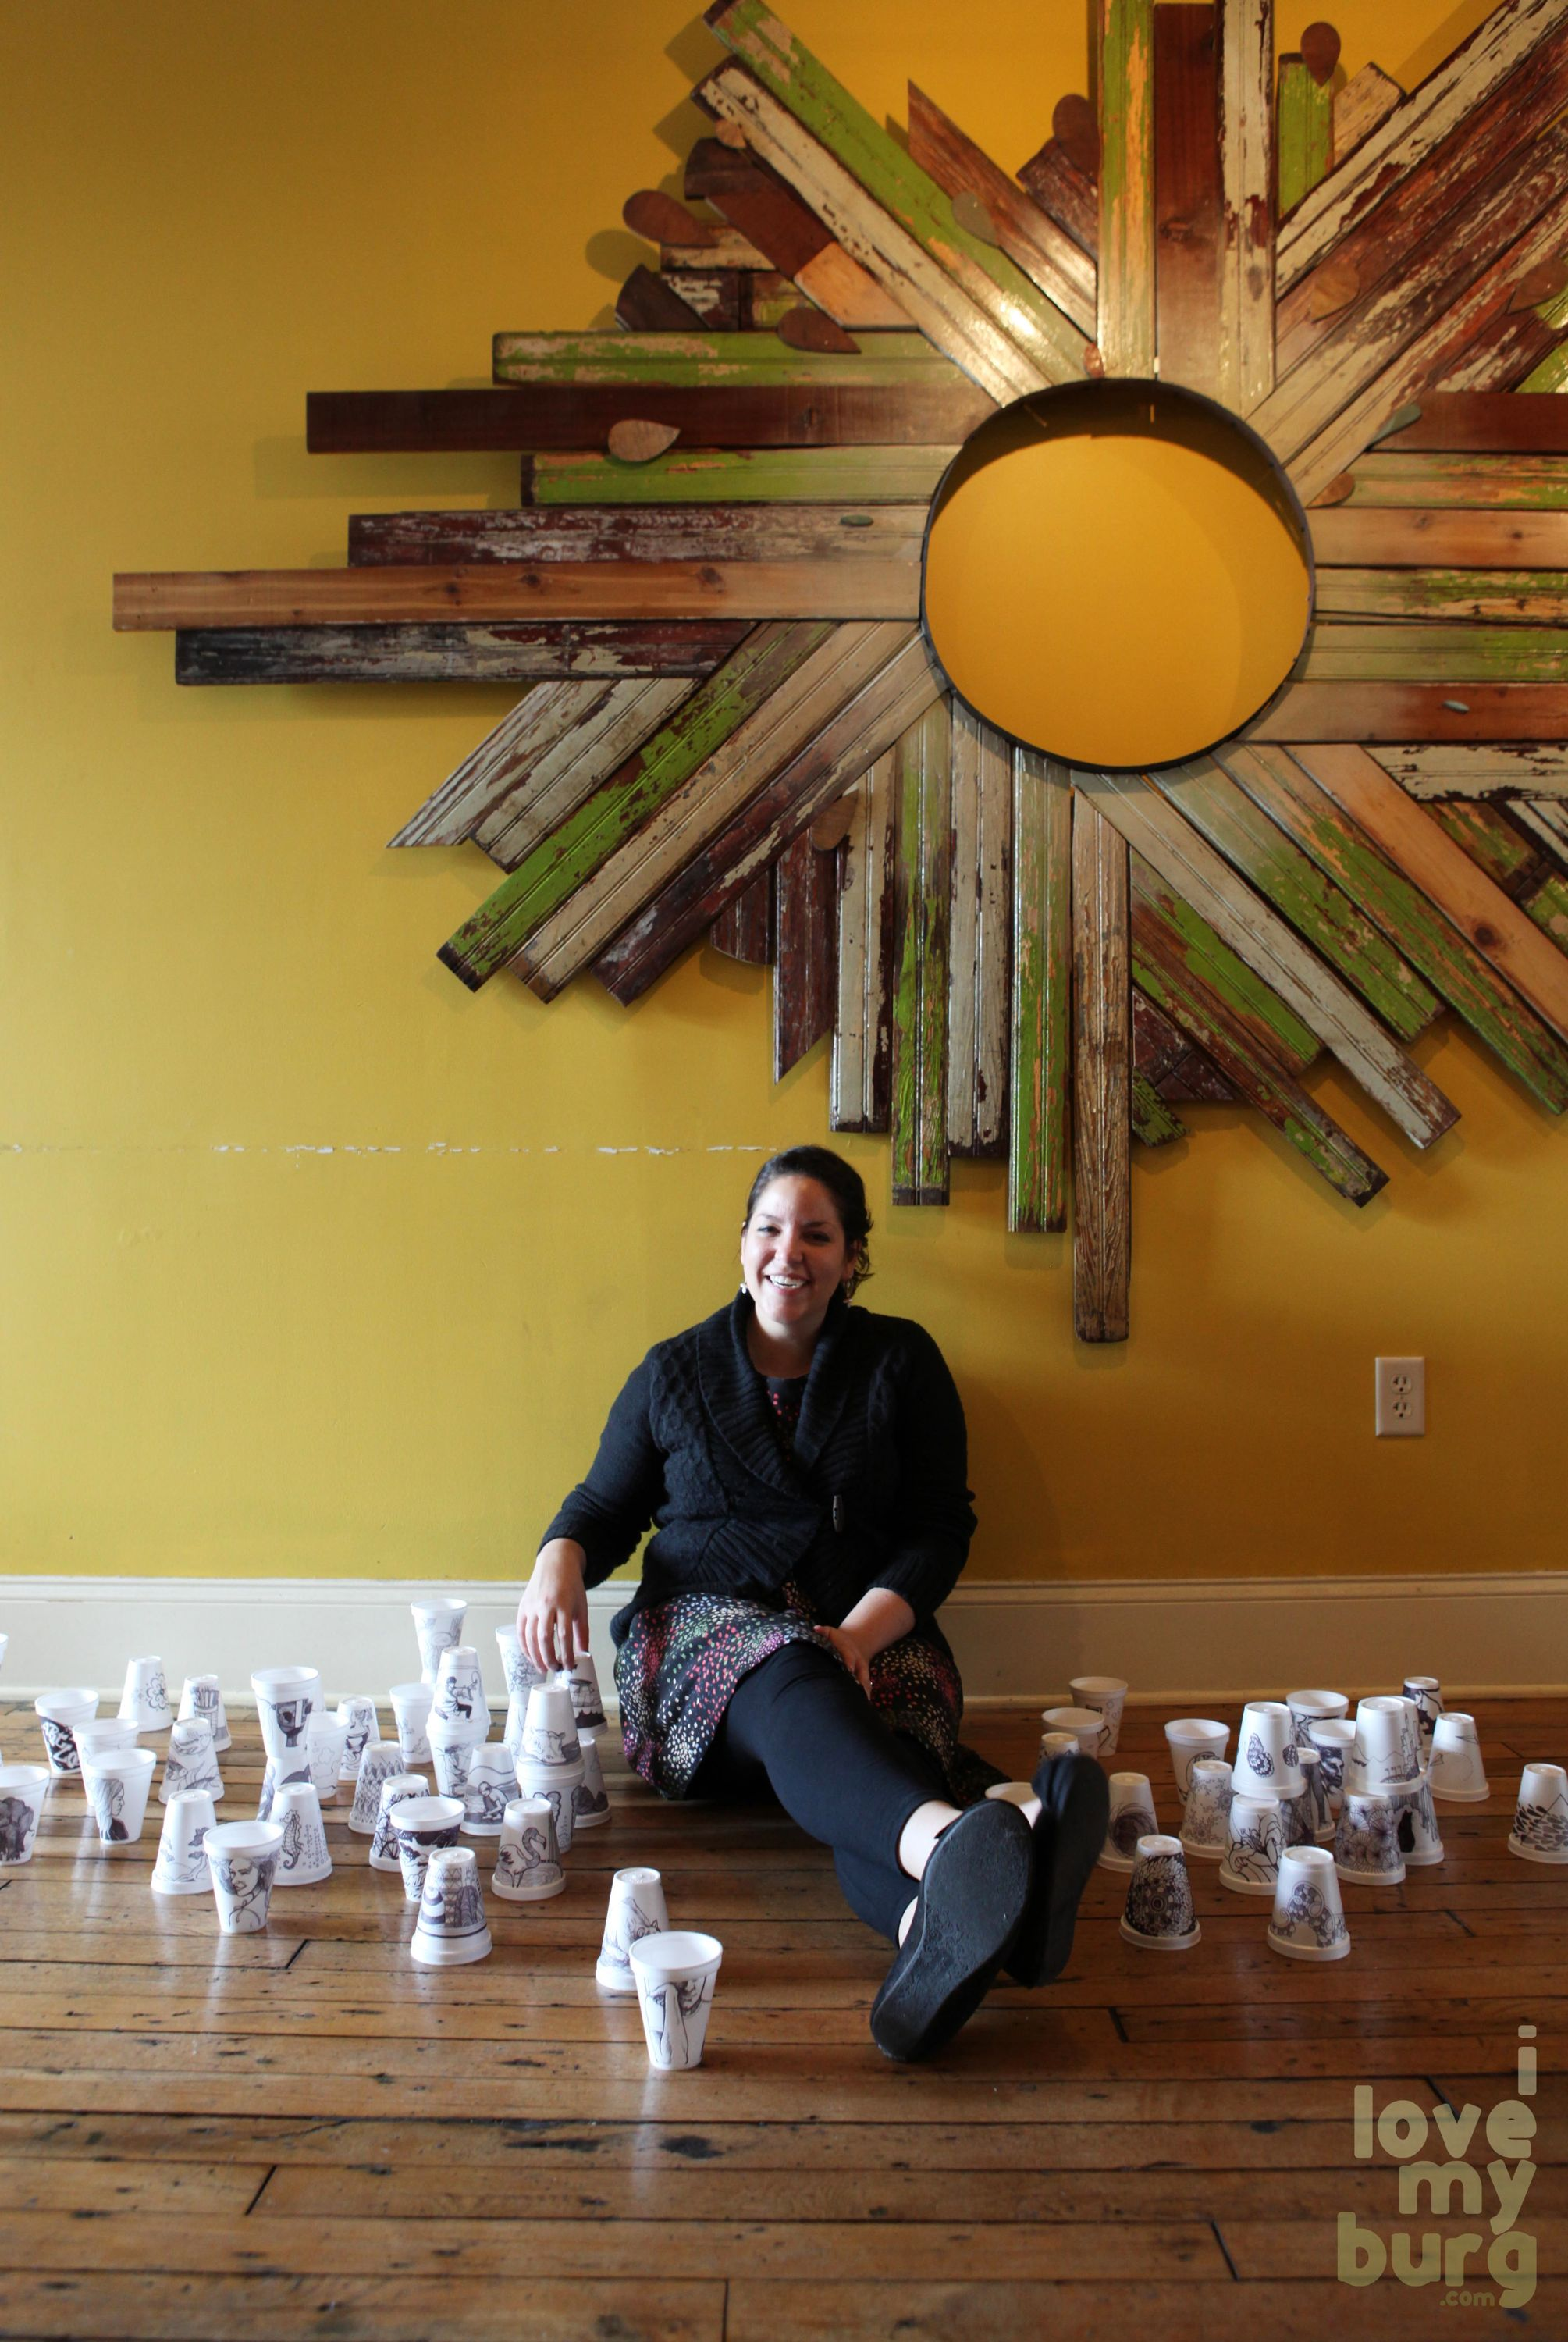 denise with cups